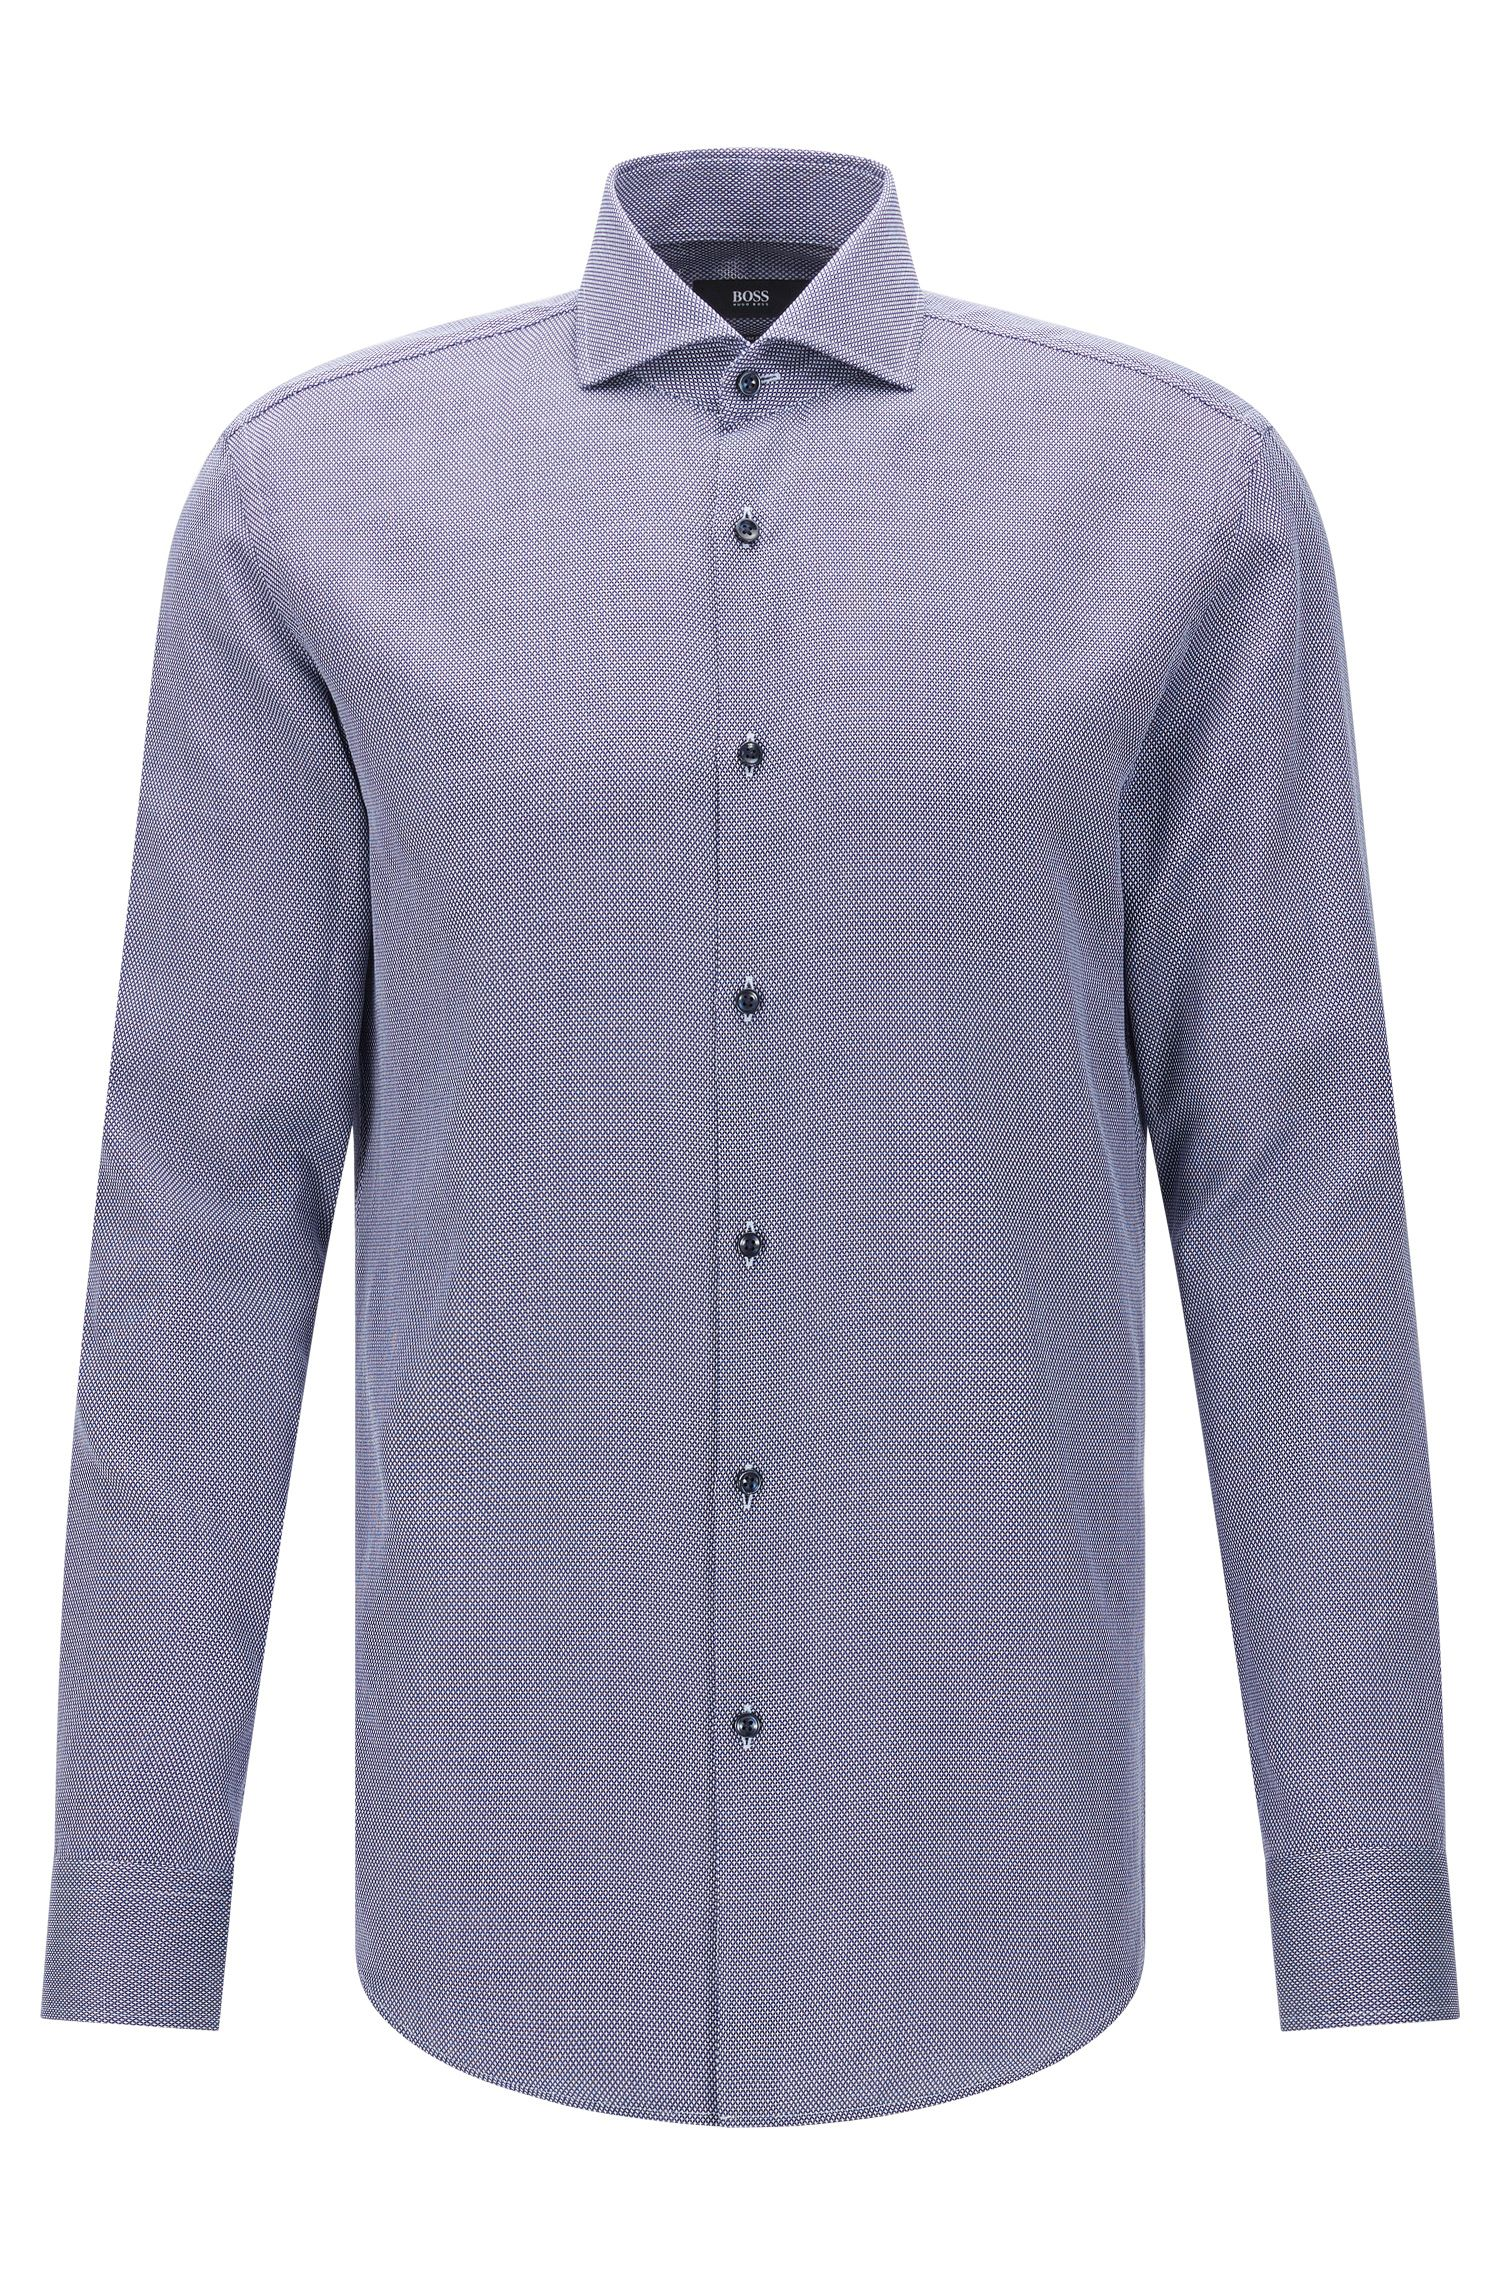 'Jason' | Slim Fit, Cotton Patterned Dress Shirt